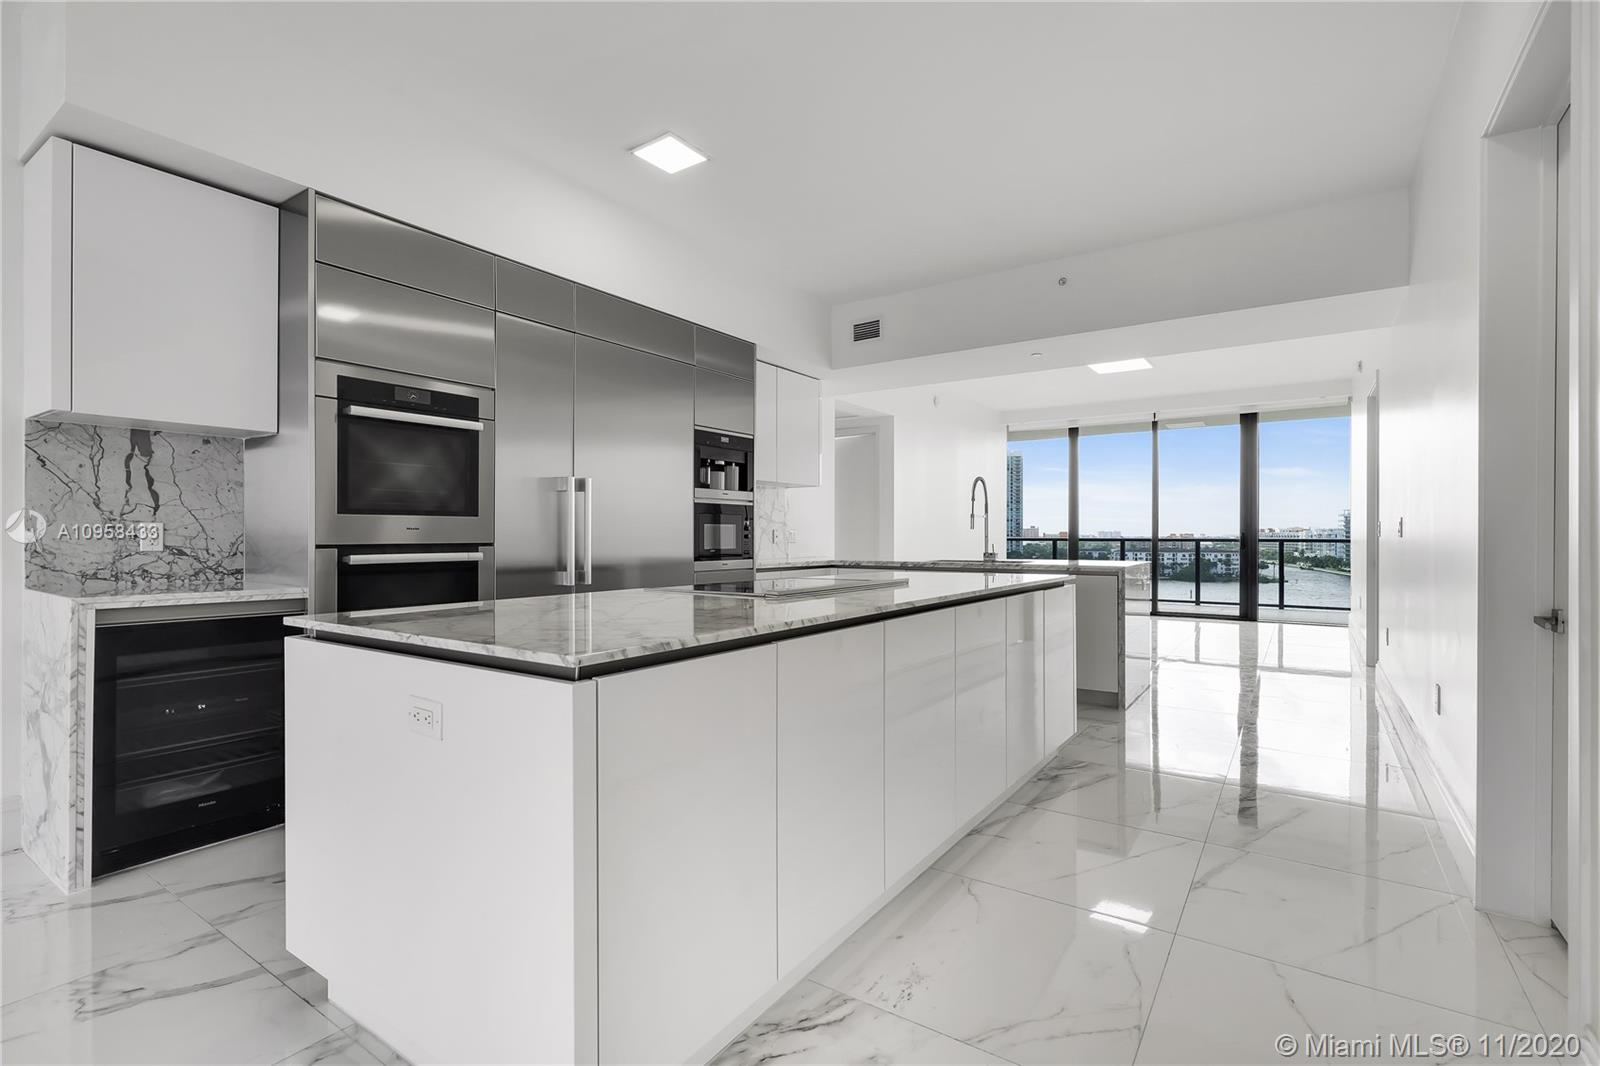 Named the #1 Residential Real Estate Development in South Florida by Elite Traveler, Privé provides unique experiences that characterize the true definition of comfort and relaxed living, all the time, and practically all to yourself.  LUXURY LIVING IN PRIVE AT ISLAND ESTATES, GORGEOUS APARTMENT 3 ROOMS 4/1 BATHROOMS, COMPLETELY REMODELED AND NEVER LIVED IN WITH A SUMMER KITCHEN, PRIVATE ELEVATOR WITH FOYER, CUSTOM CLOSETS, LAUNDRY AREA, SPECTACULAR BATHROOMS AND A KITCHEN WITH ALL AMENITIES. THE RESIDENCE INCLUDES: STATE OF THE ART GYM & SPA, KIDS & TODDLER AREAS, PRIVATE MARINA FOR BOATS OF UP TO 150 FT, 2 PARKING SPACES, VALET PARKING, 24 HOUR SECURITY, ONSITE CAFE, SOCIAL ROOM, 2 POOLS, JACUZZI, TENNIS COURTS.